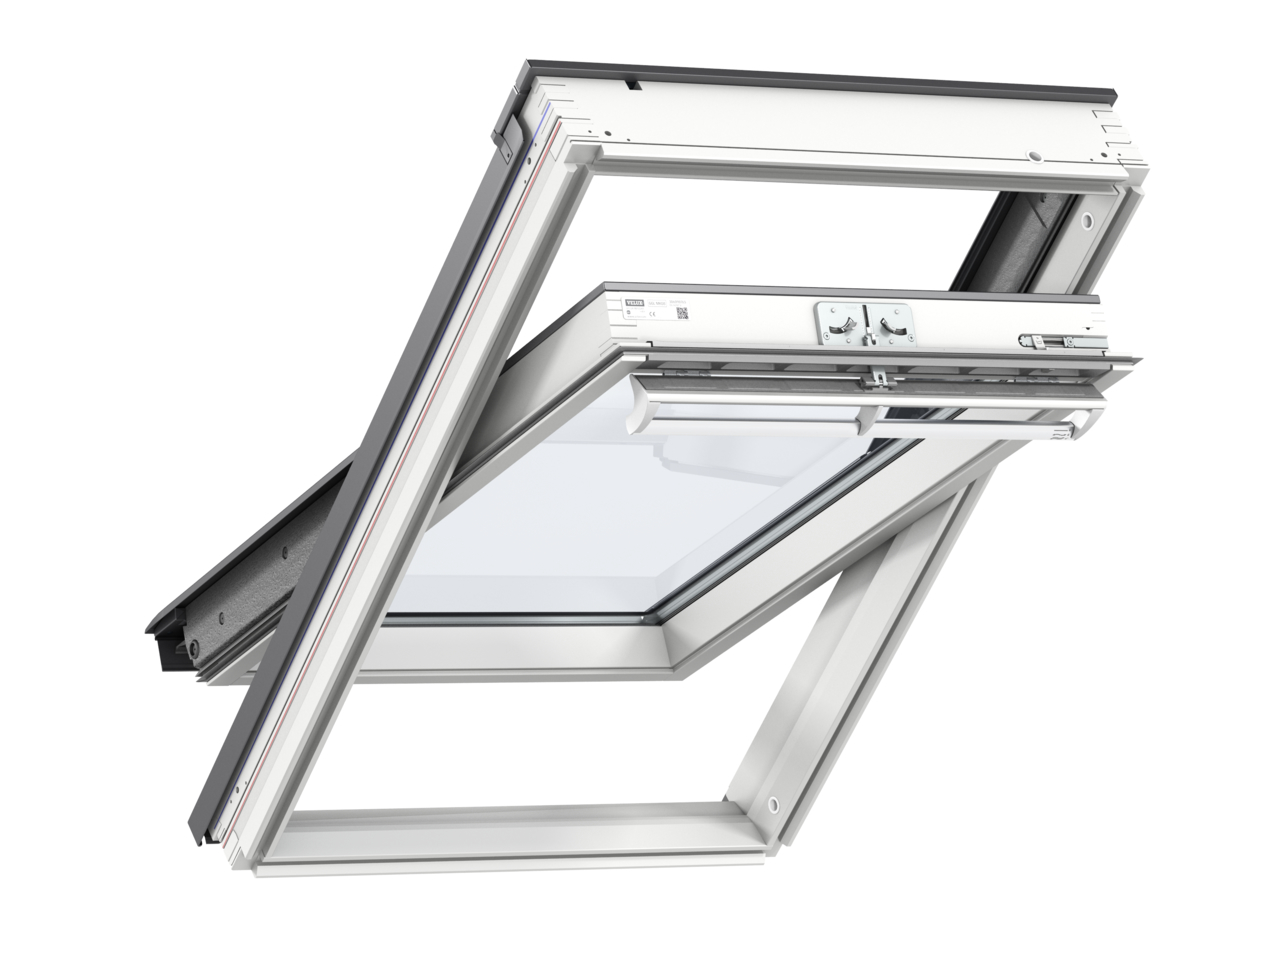 Velux GGL CK04 550 x 980mm Centre Pivot 70QPane Roof Window - White Painted